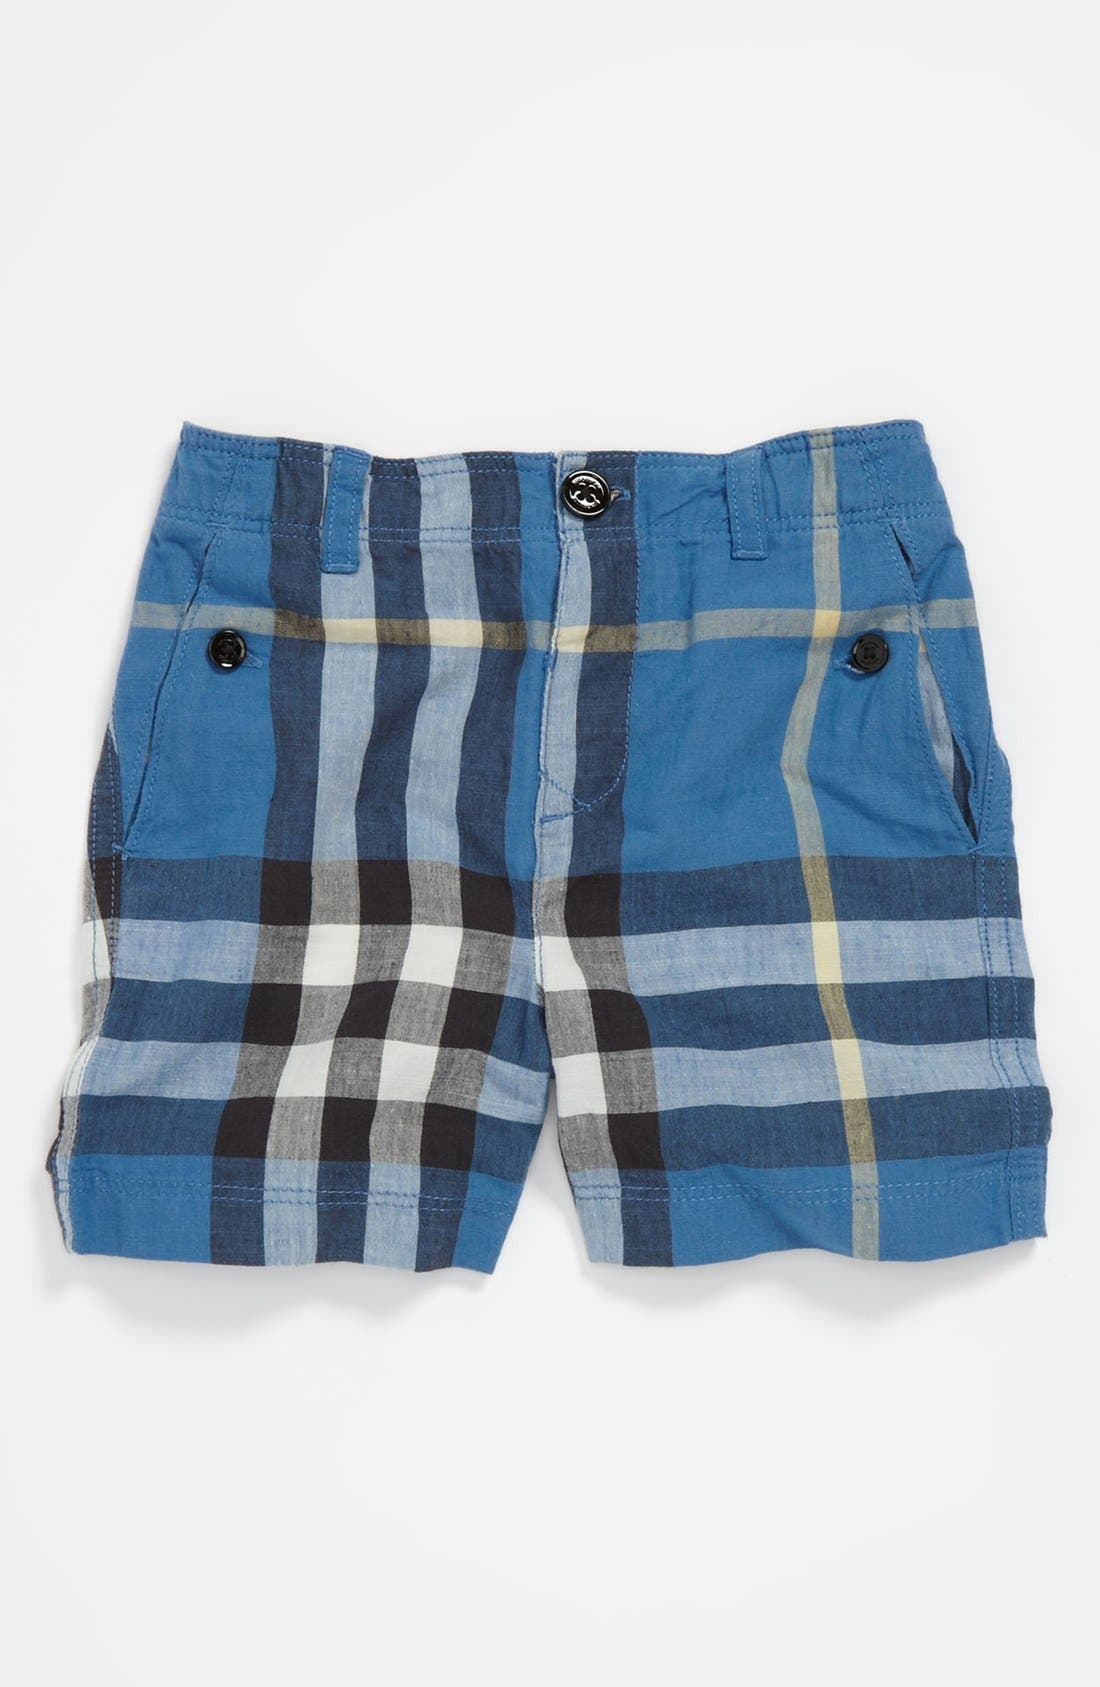 Alternate Image 1 Selected - Burberry 'Mini Scout' Shorts (Baby)